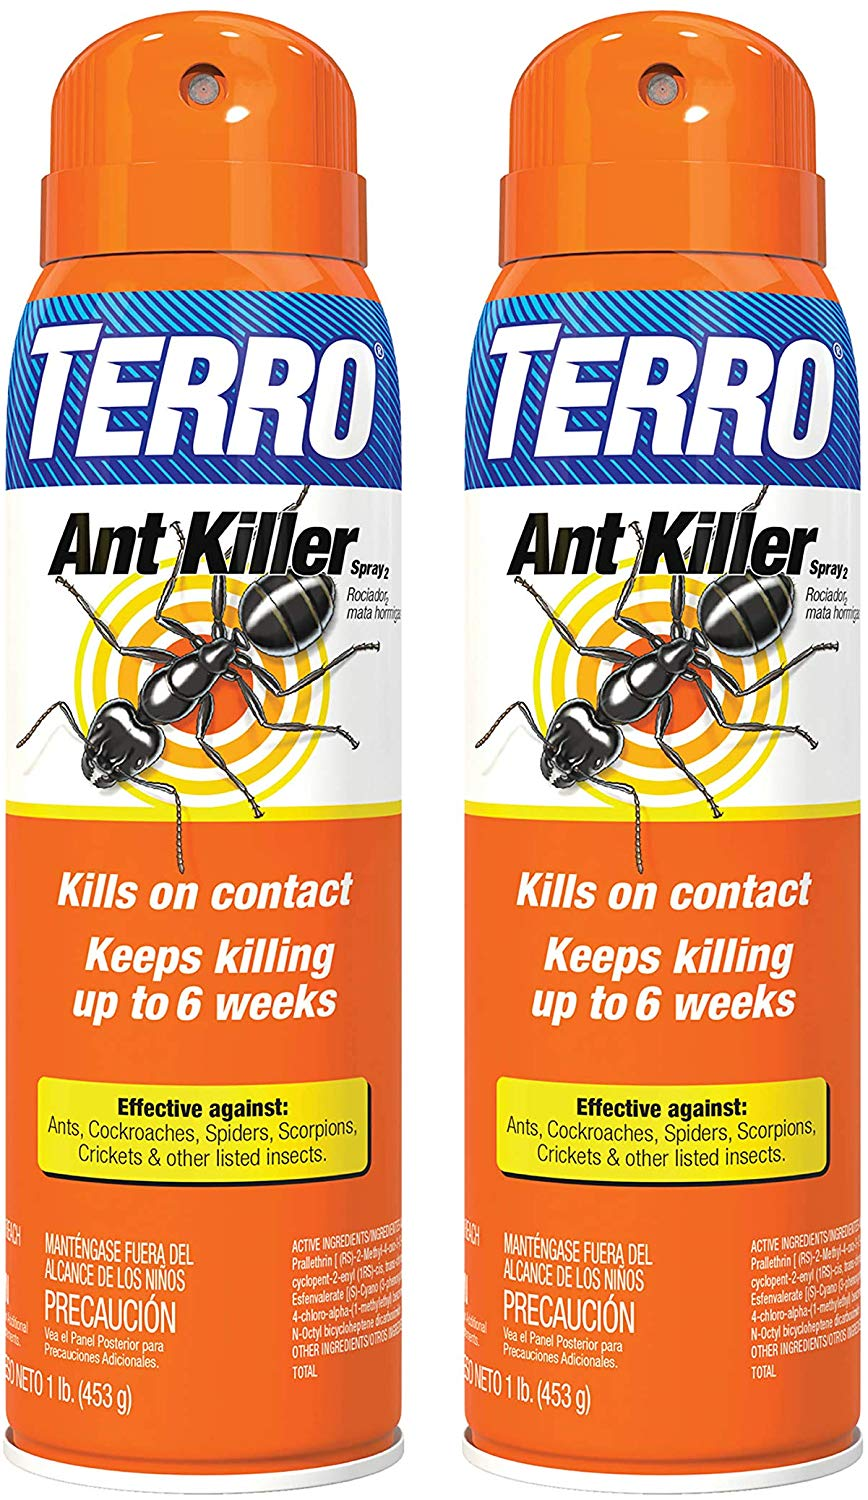 TERRO T401 Ant Killer Aerosol Spray